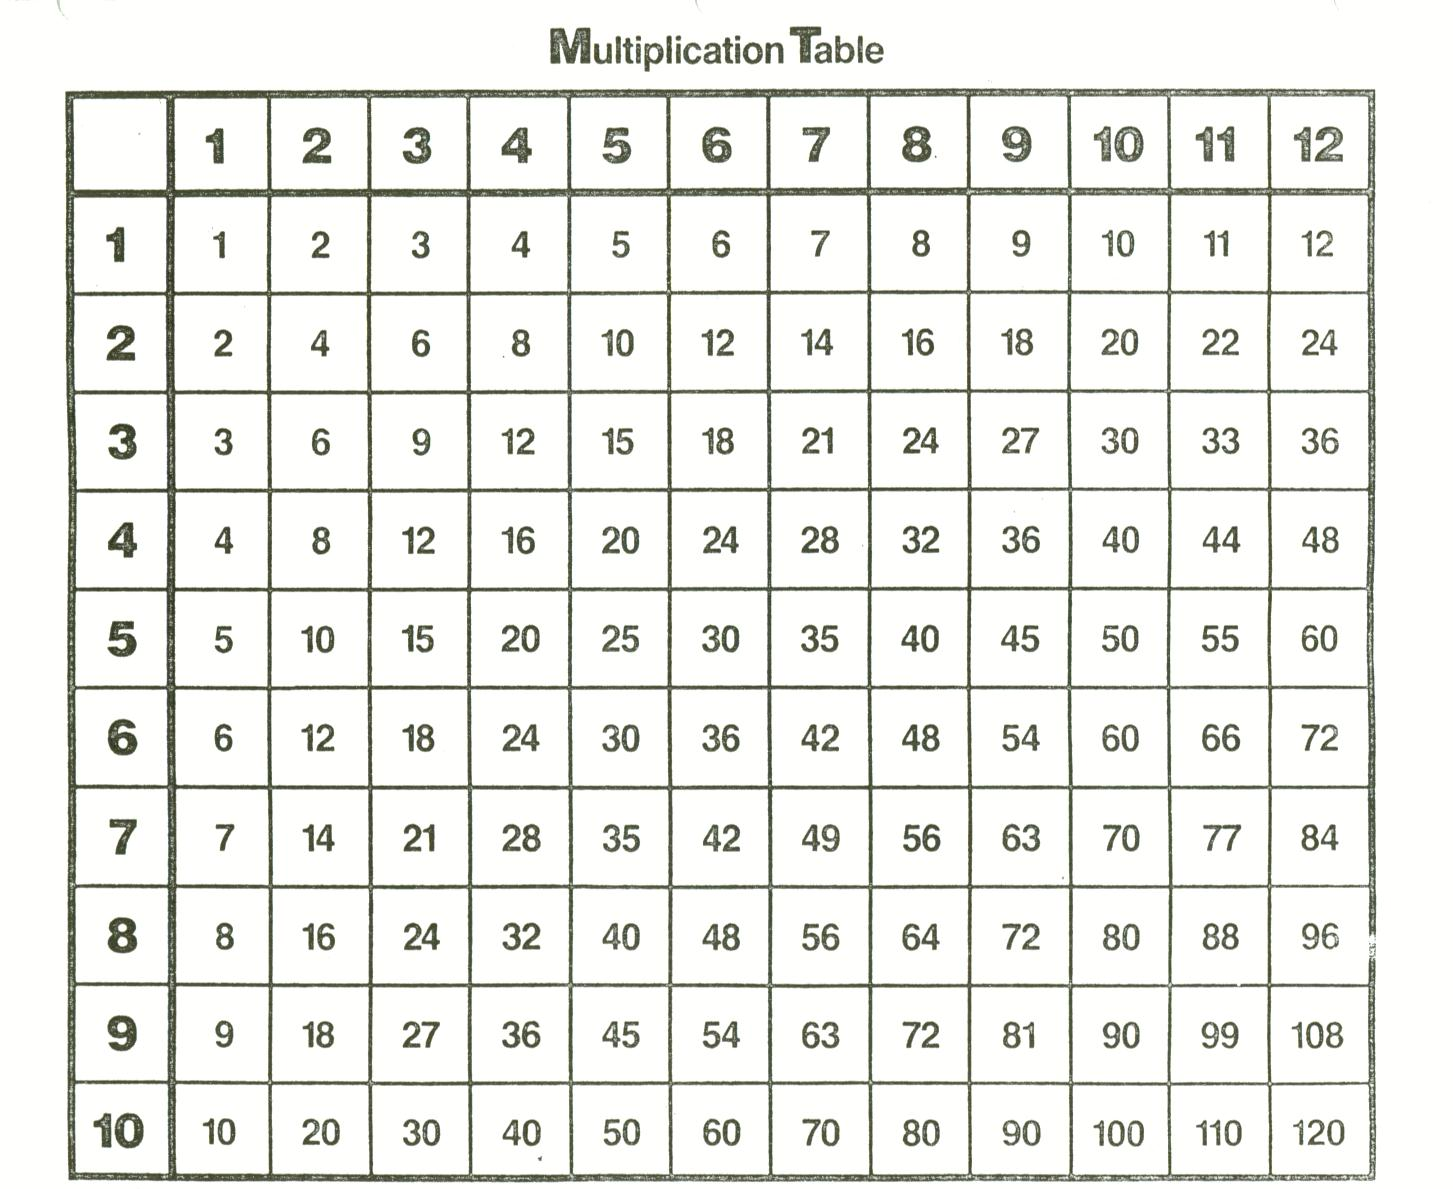 for 10 x 10 multiplication table